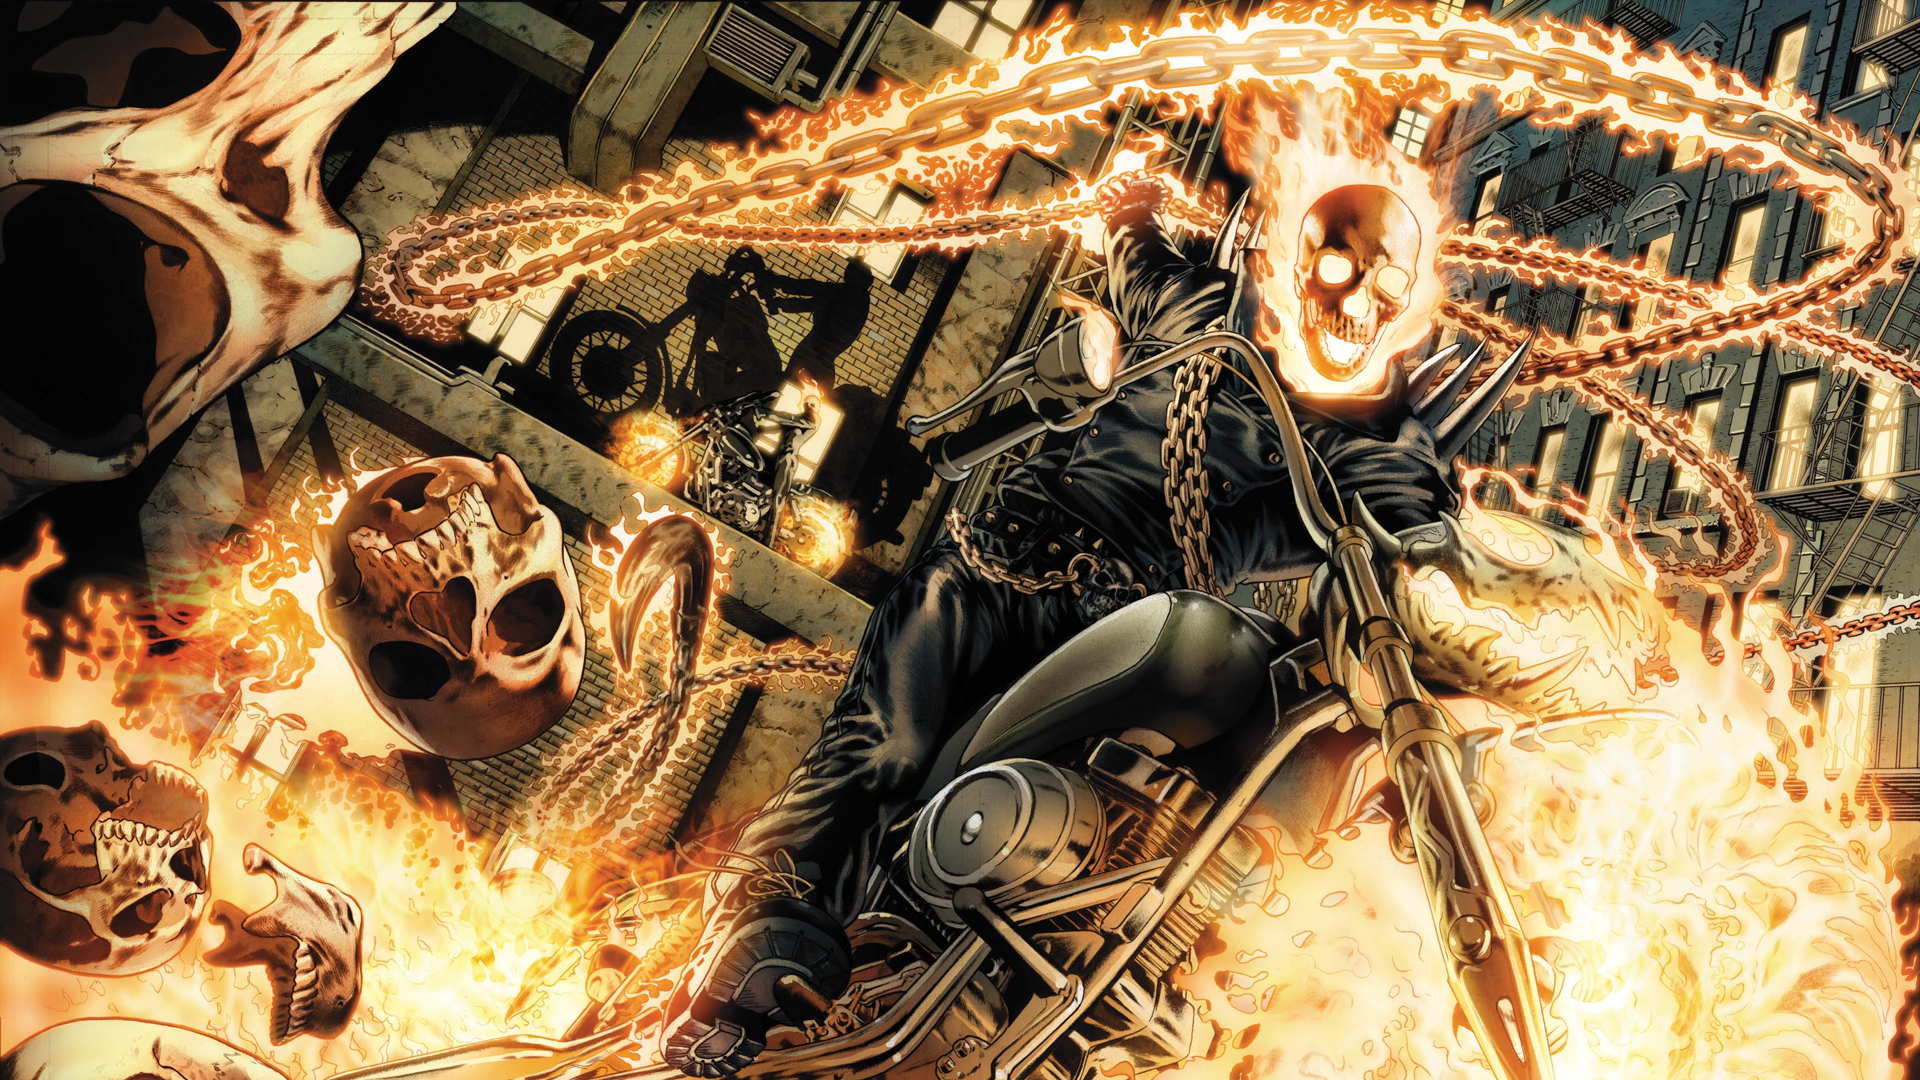 Ghost Rider wallpaper | 1920x1080 | #69825